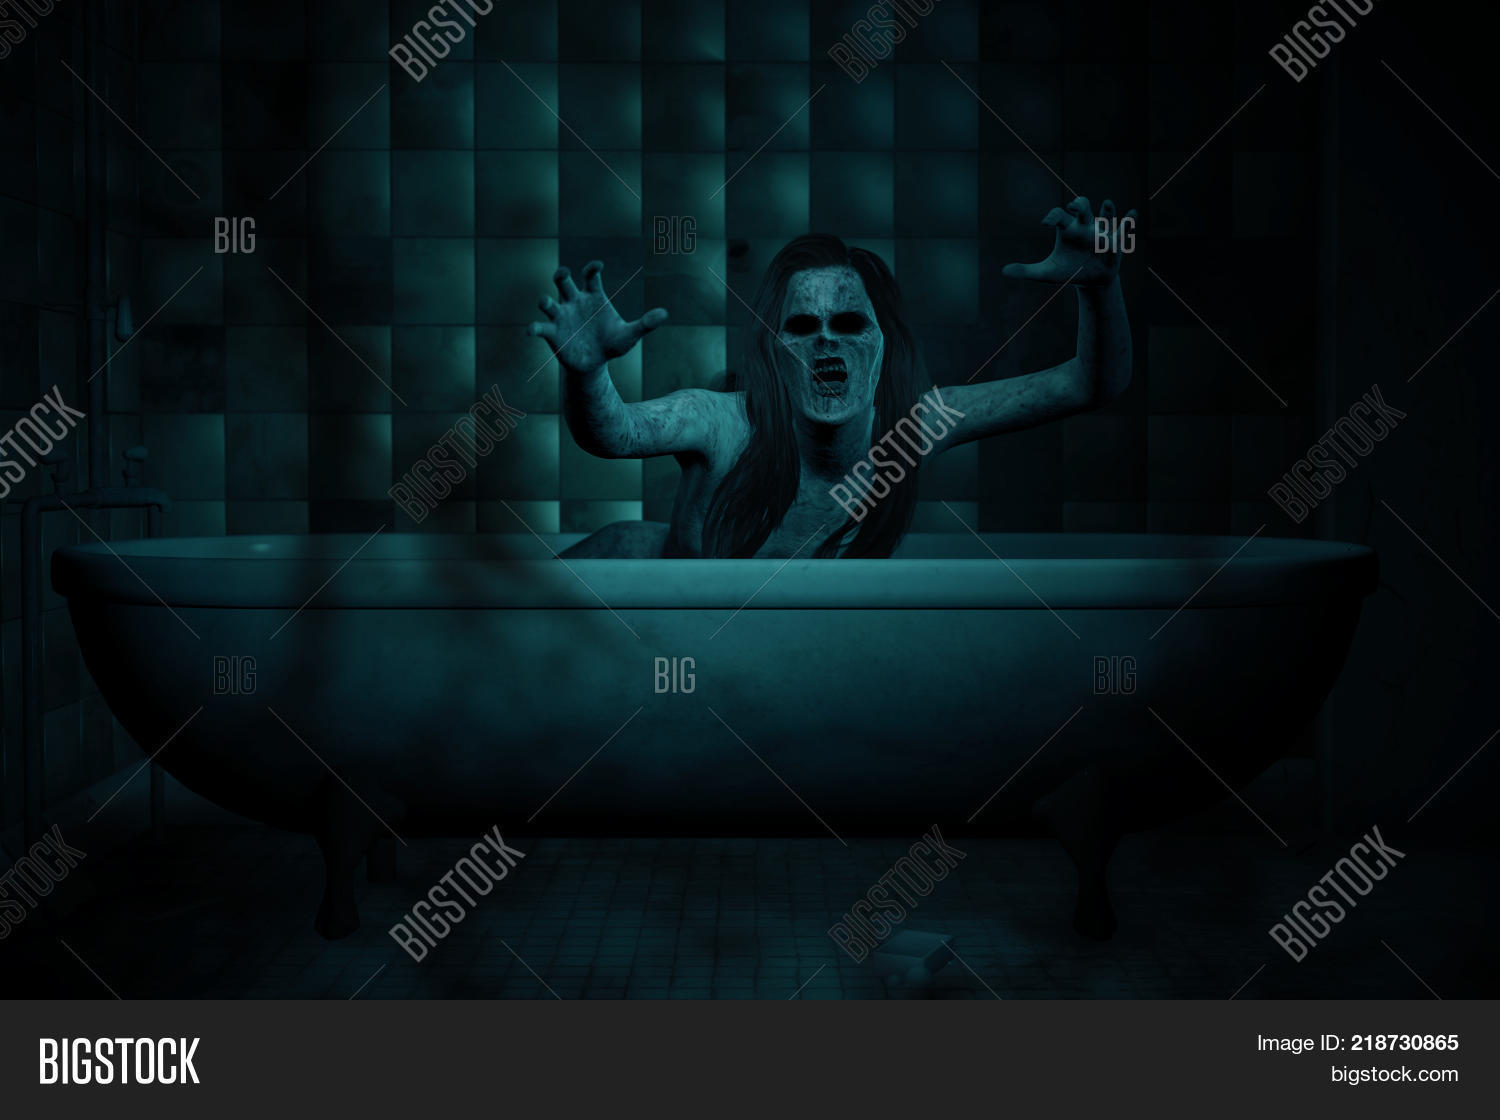 3d Illustration Scary Image & Photo (Free Trial) | Bigstock